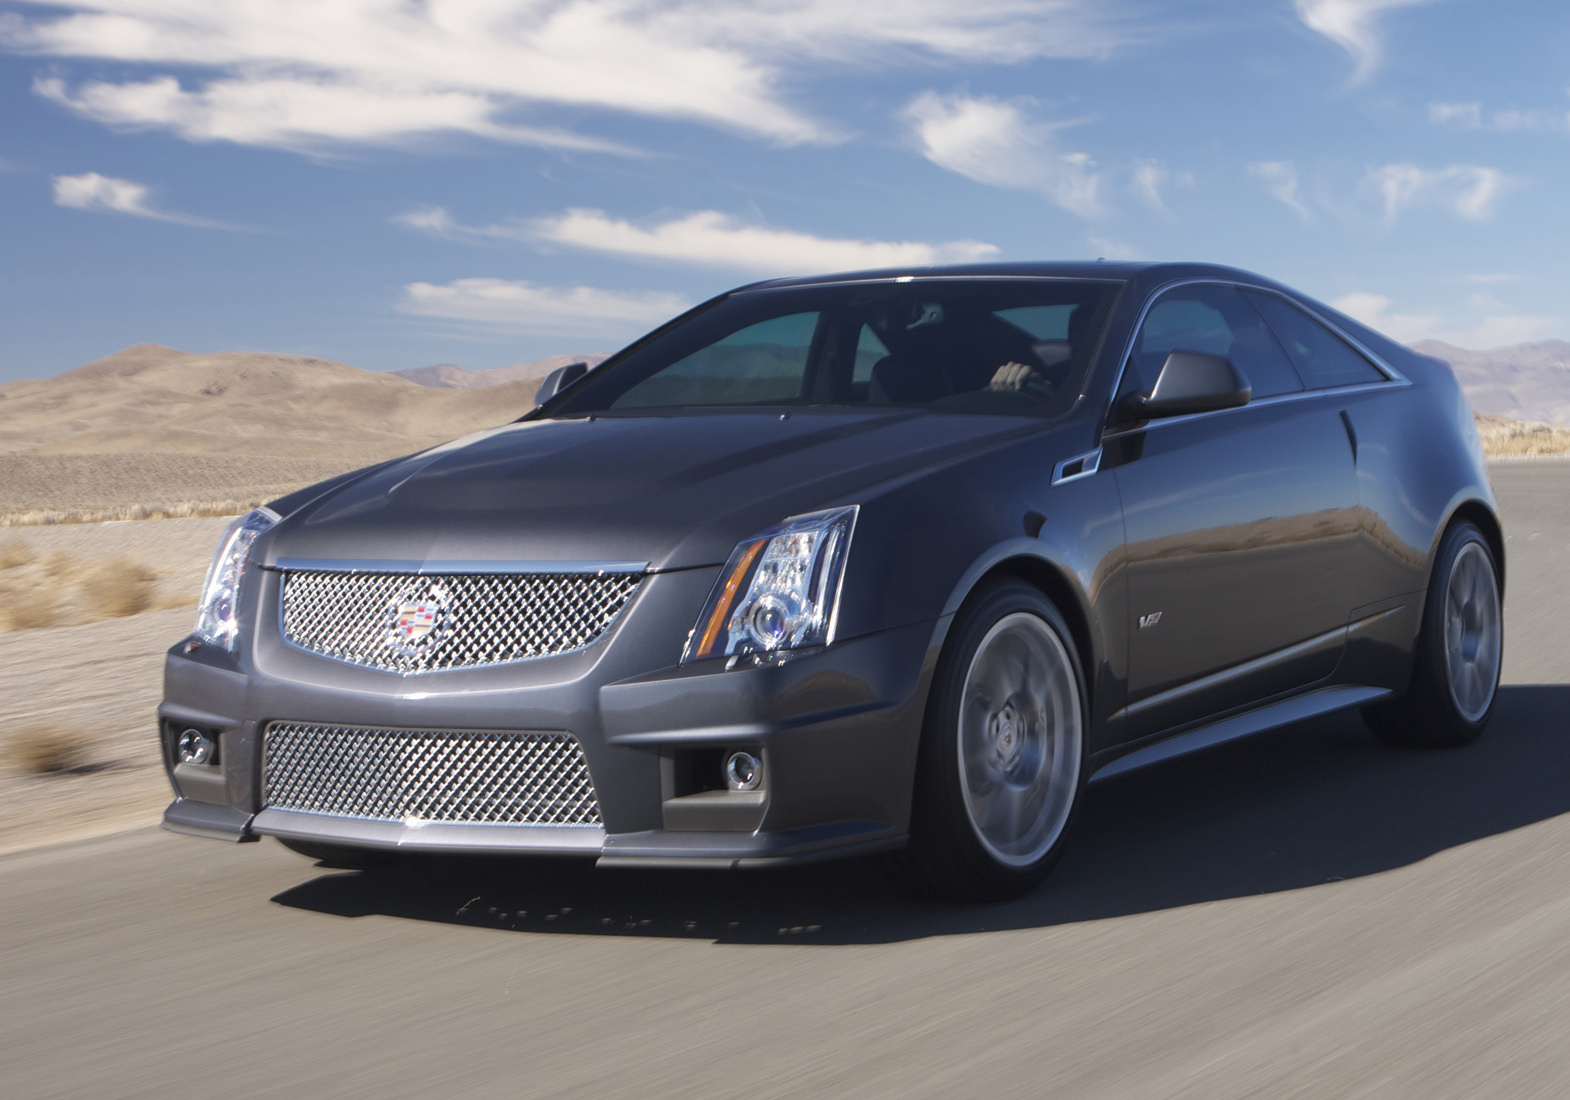 ats parker turbo awd cadillac co used luxury for denver com cars w tsg sale metro auto newandusedcars leather